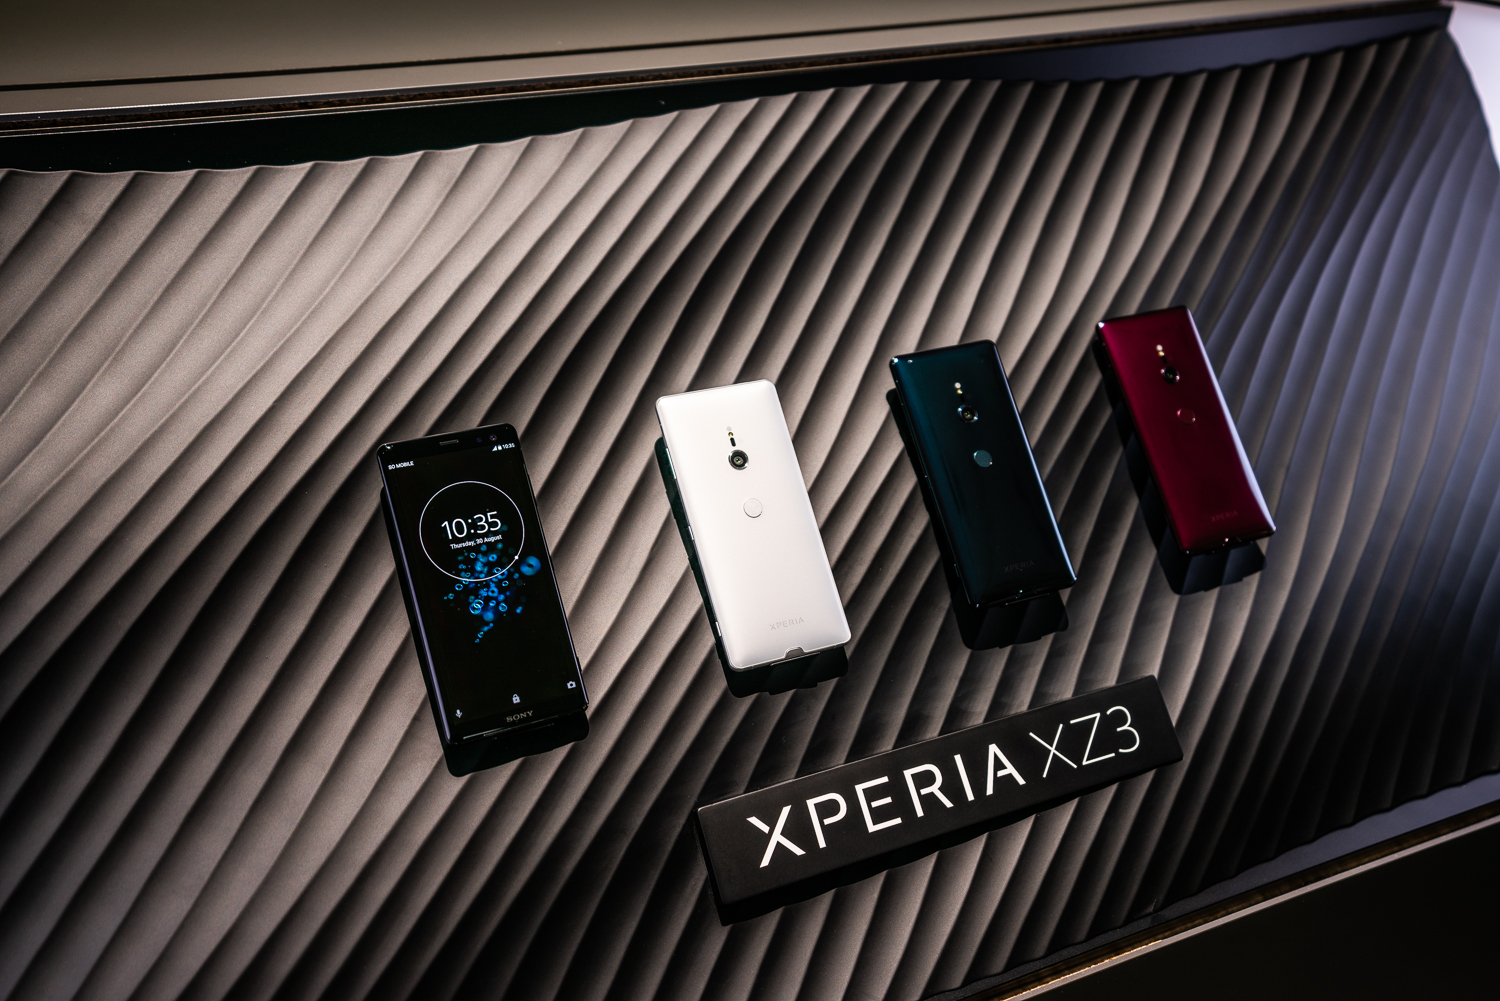 Sony Is Clinging On To The Xperia Mobile Division As Losses Mount